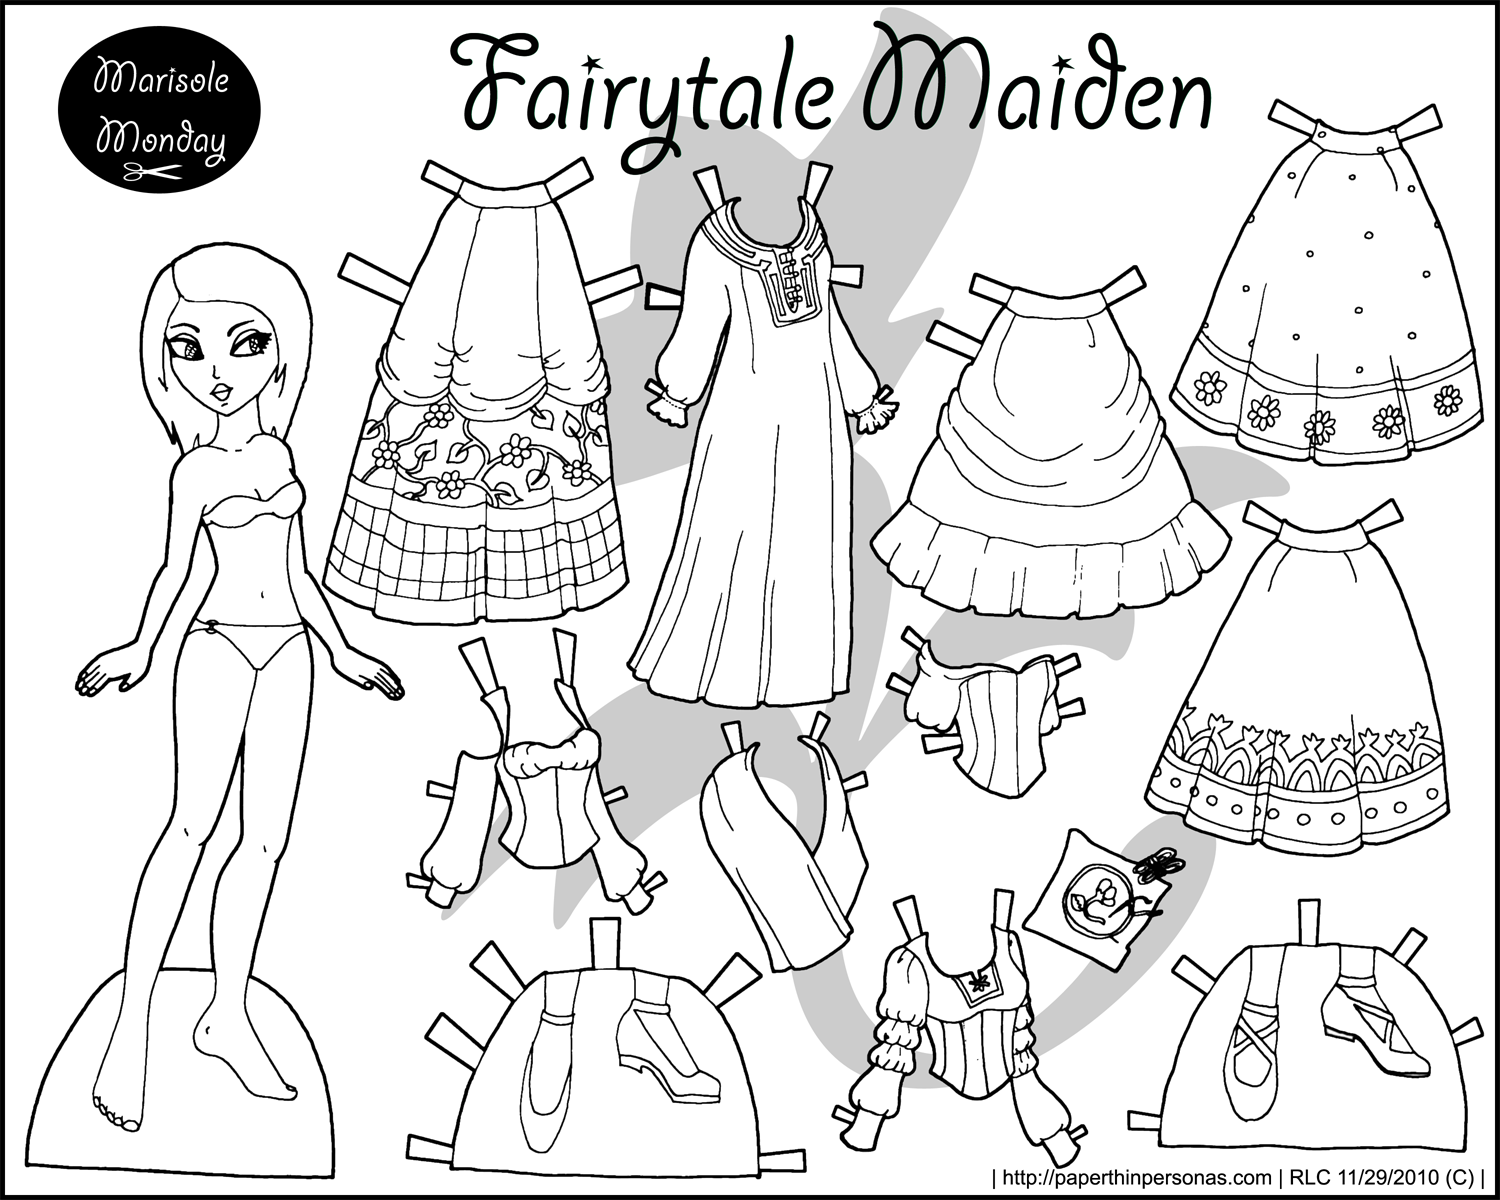 dress up dolls printable four paper dolls in black and white for coloring printable up dress dolls